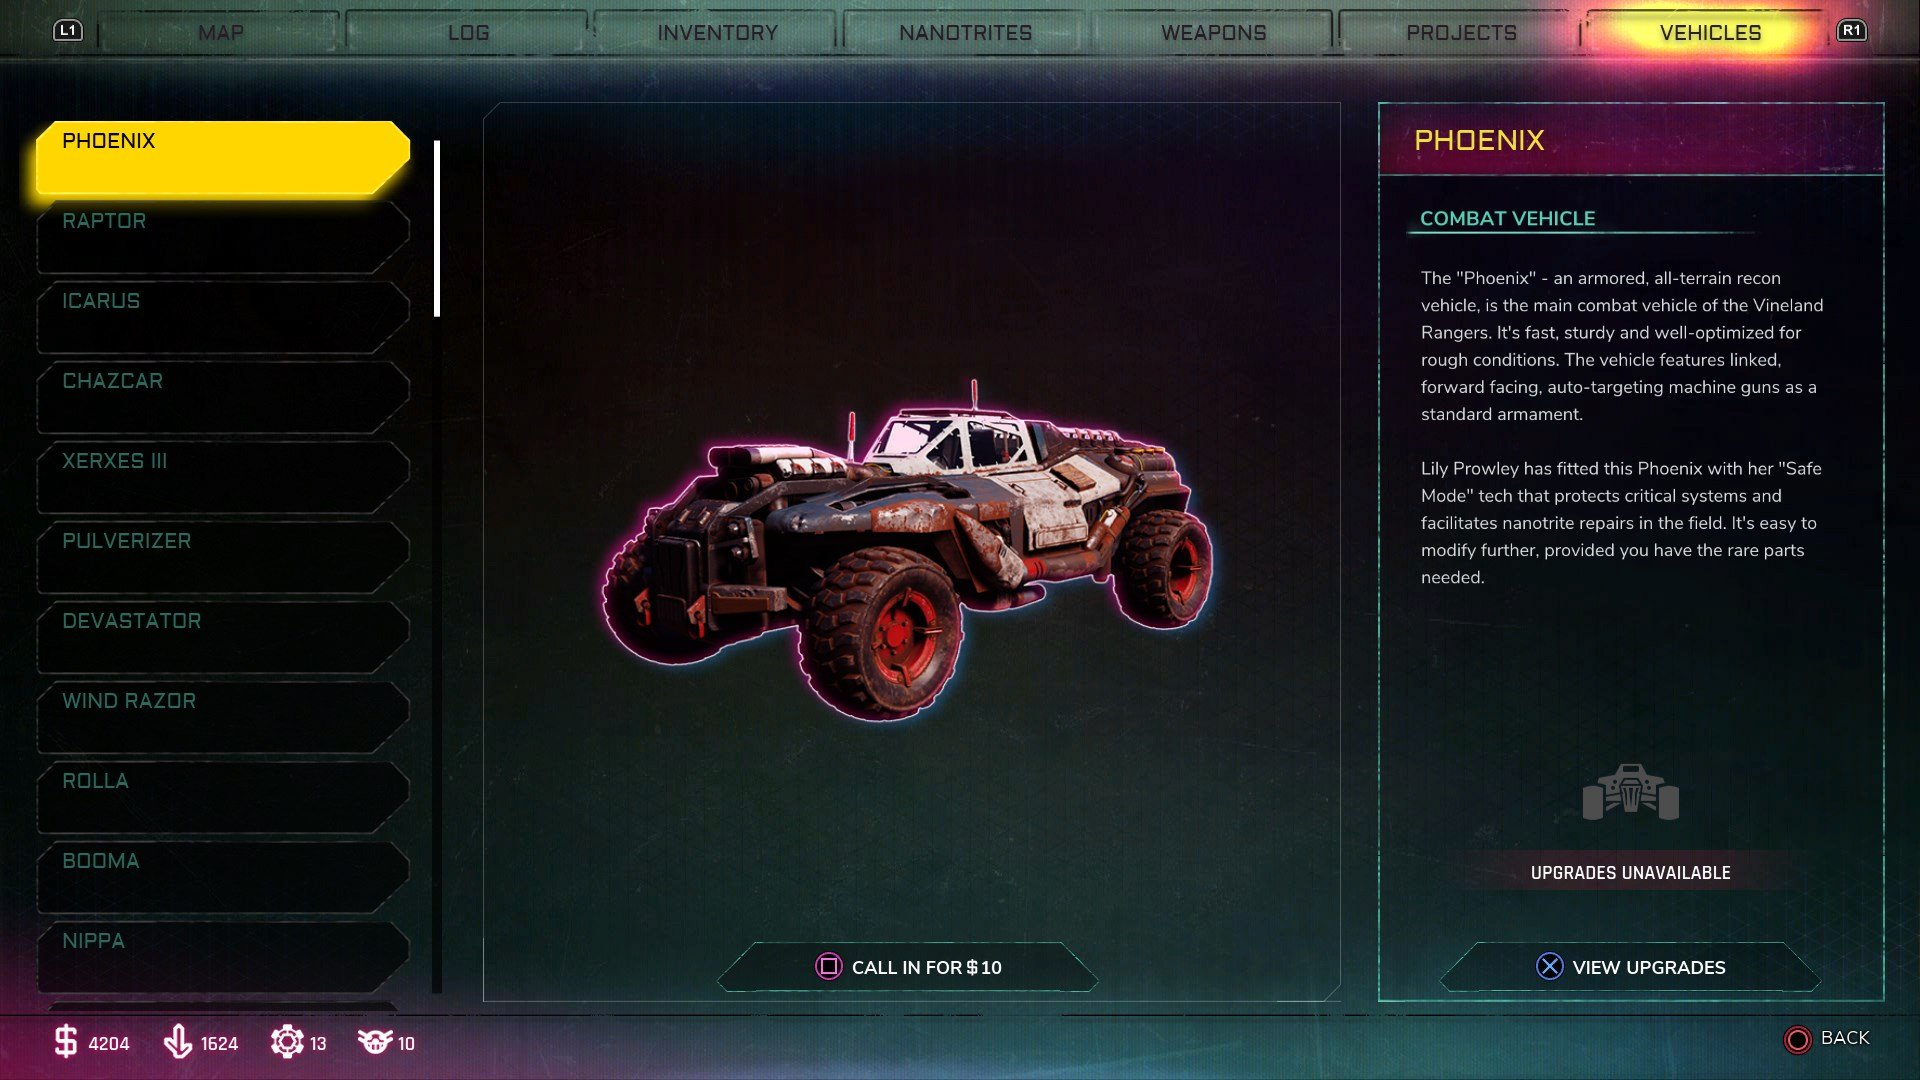 To spawn a vehicle, open your menu, select the Vehicles tab, then pick the vehicle you wish to spawn in Rage 2.